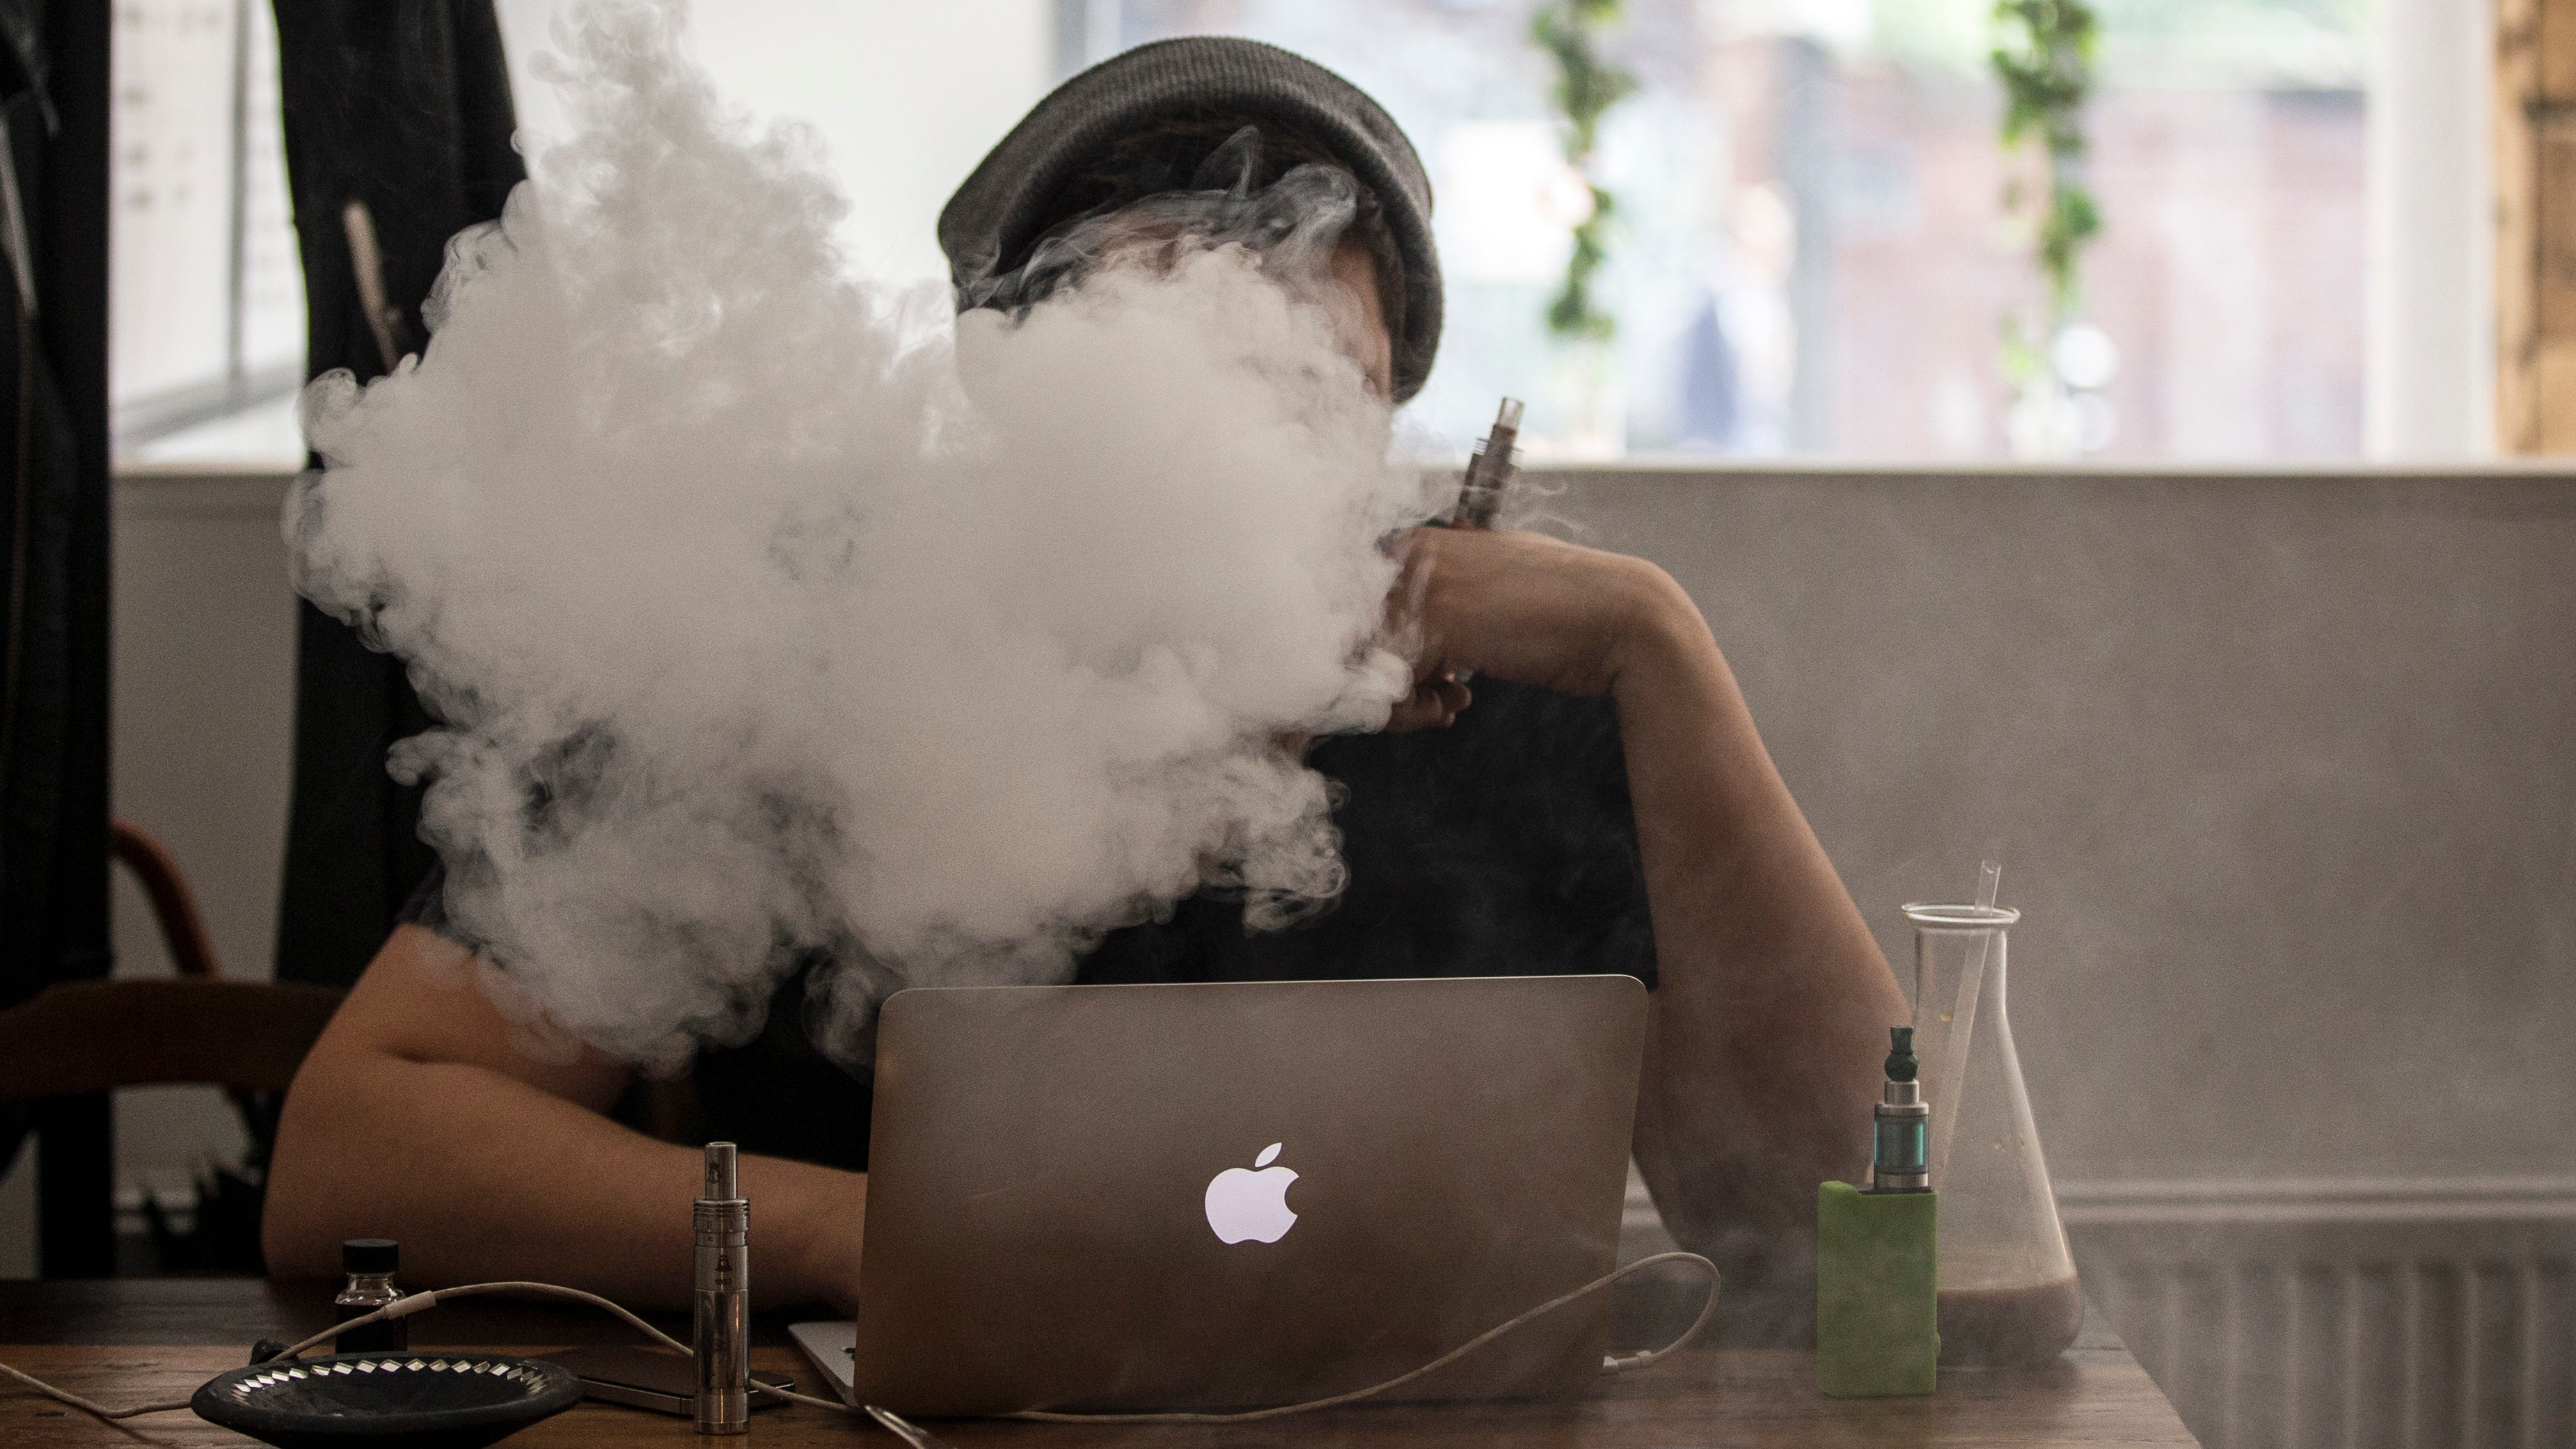 E-Cig Vapour Tested Positive For Lead And Arsenic In New Study